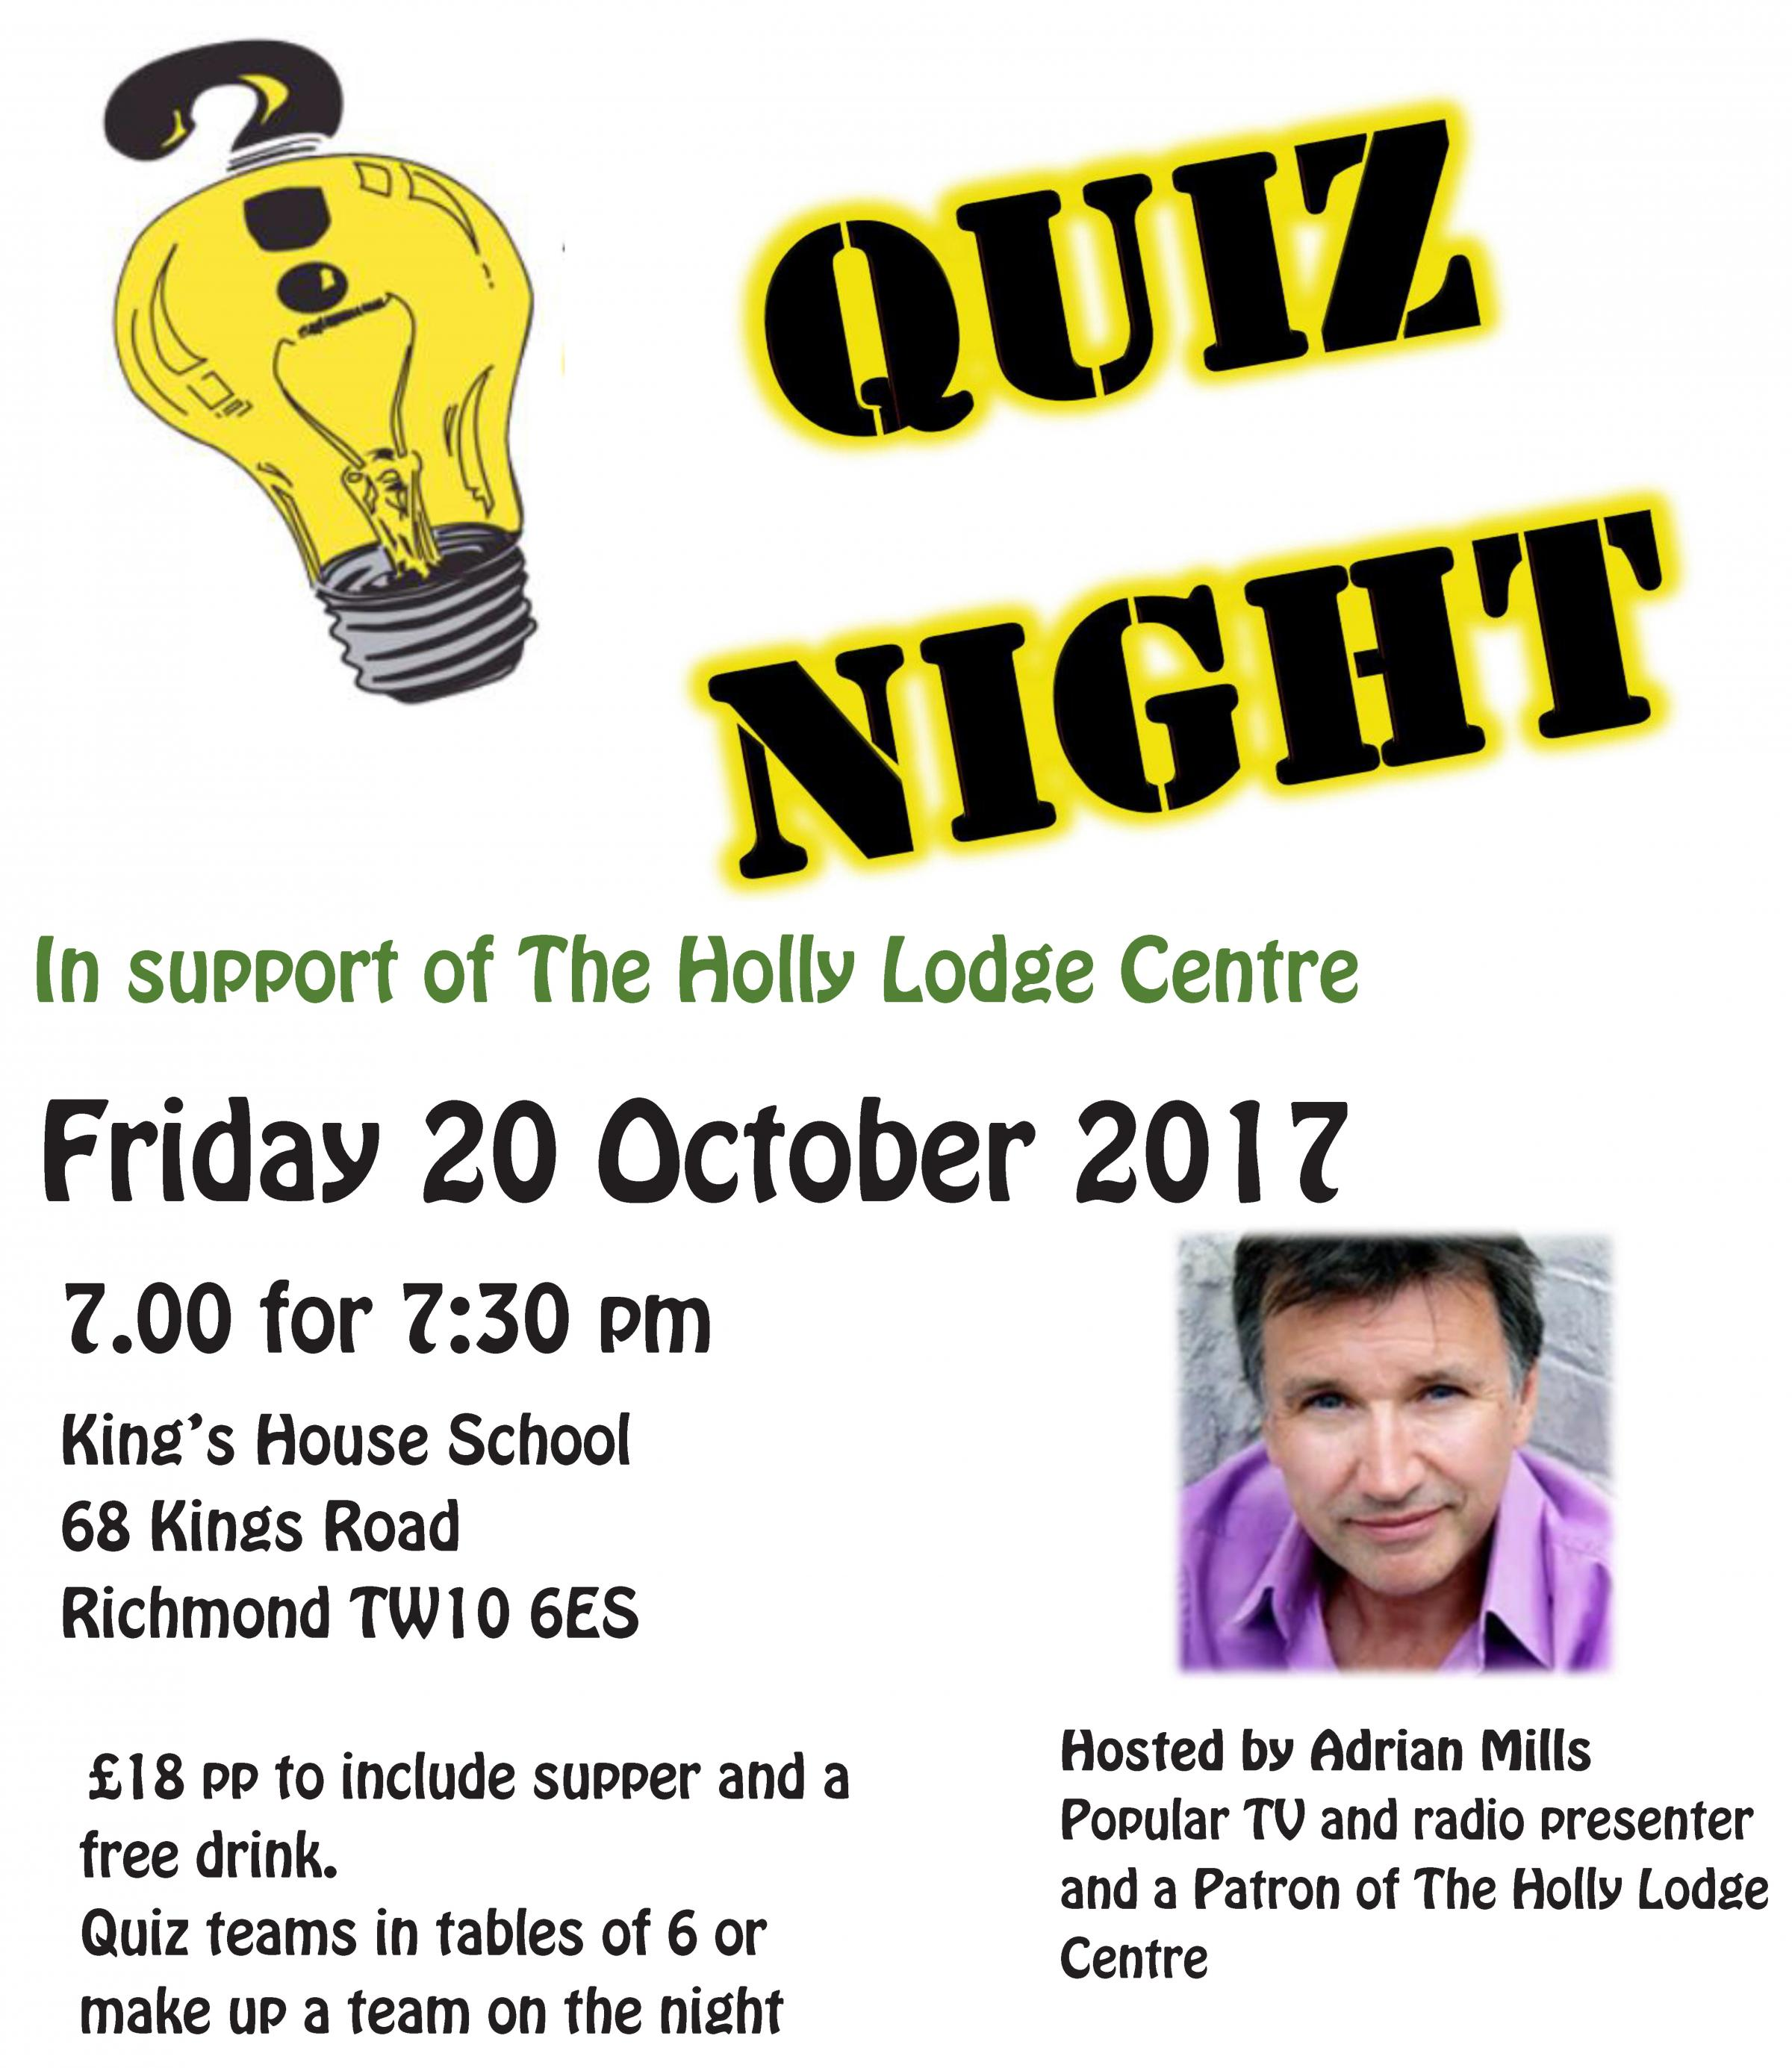 The Holly Lodge Centre's Annual Quiz Night